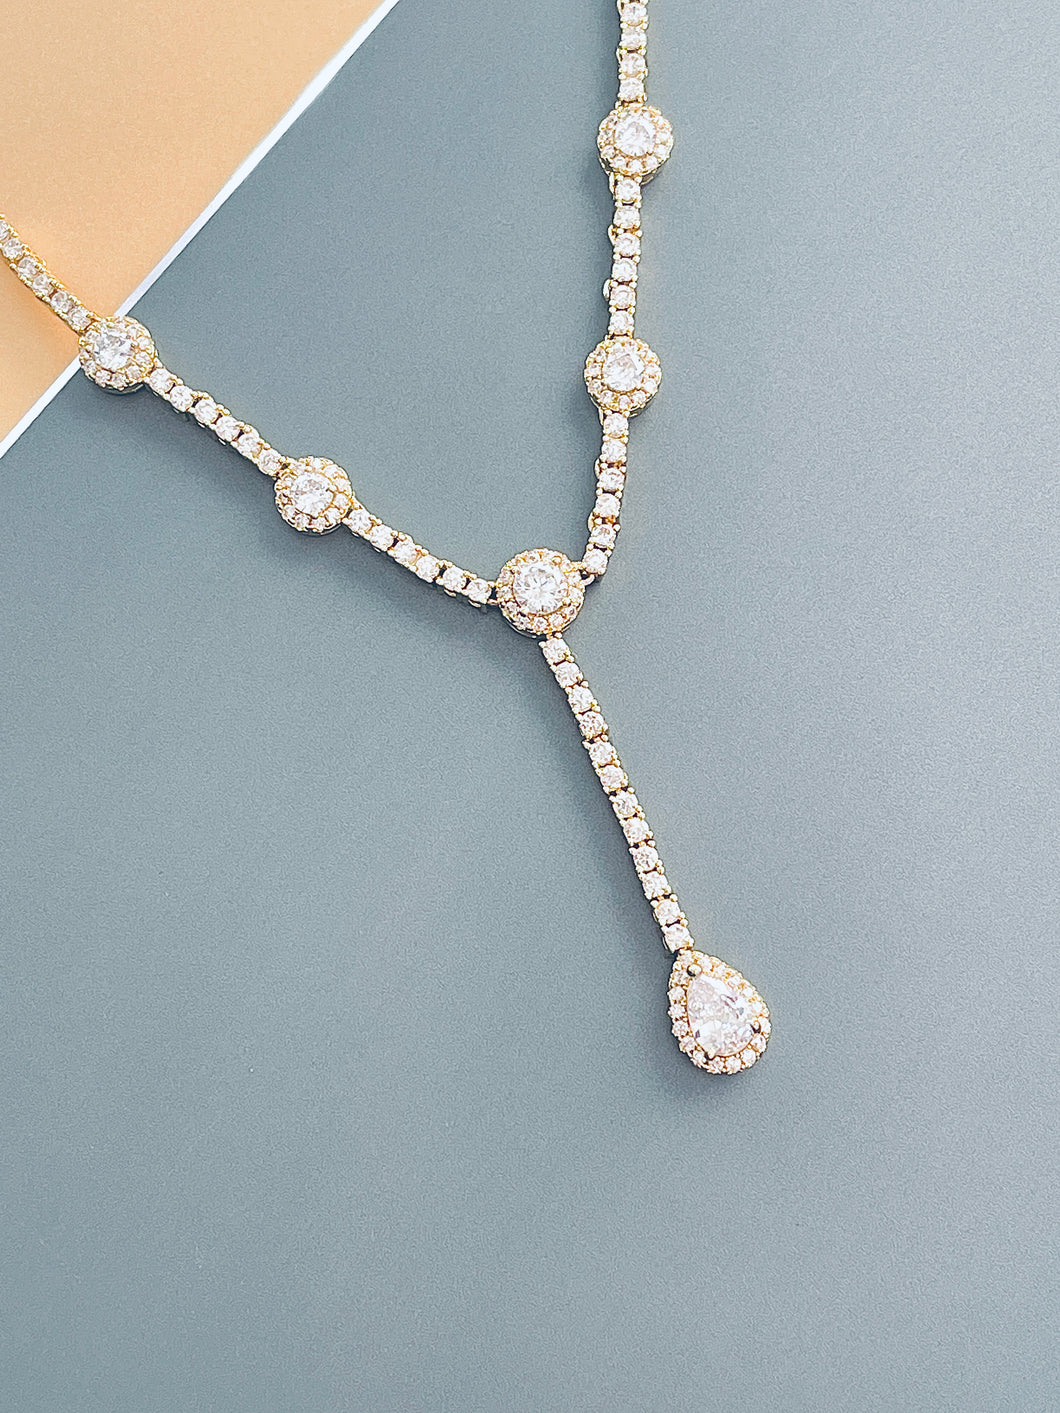 MELODY - Elegant CZ With Teardrop Stones Necklace In 14k Gold